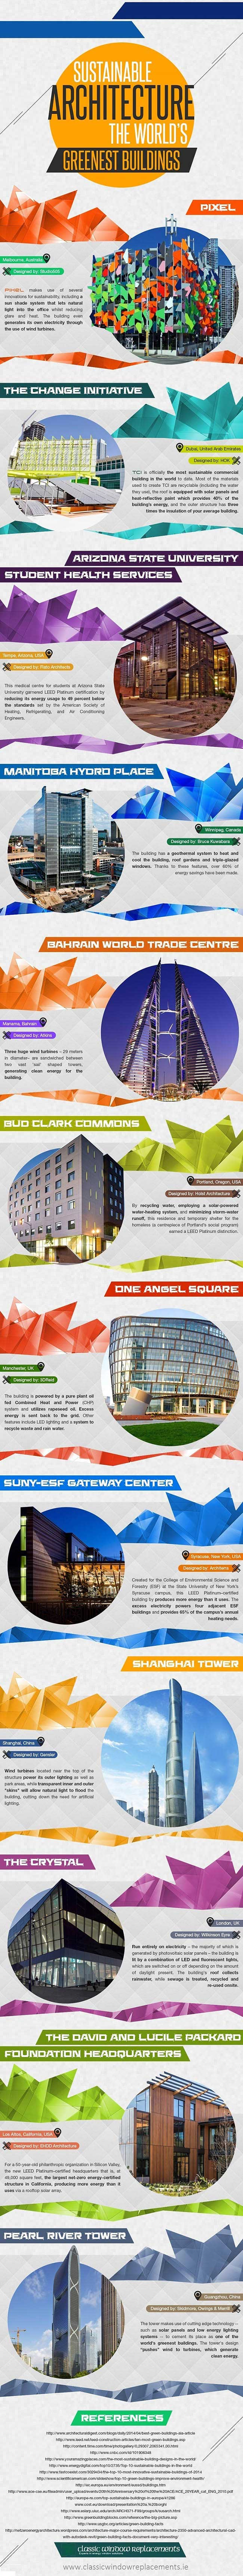 Sustainable-architecture-worlds-greenest-buildings-2a